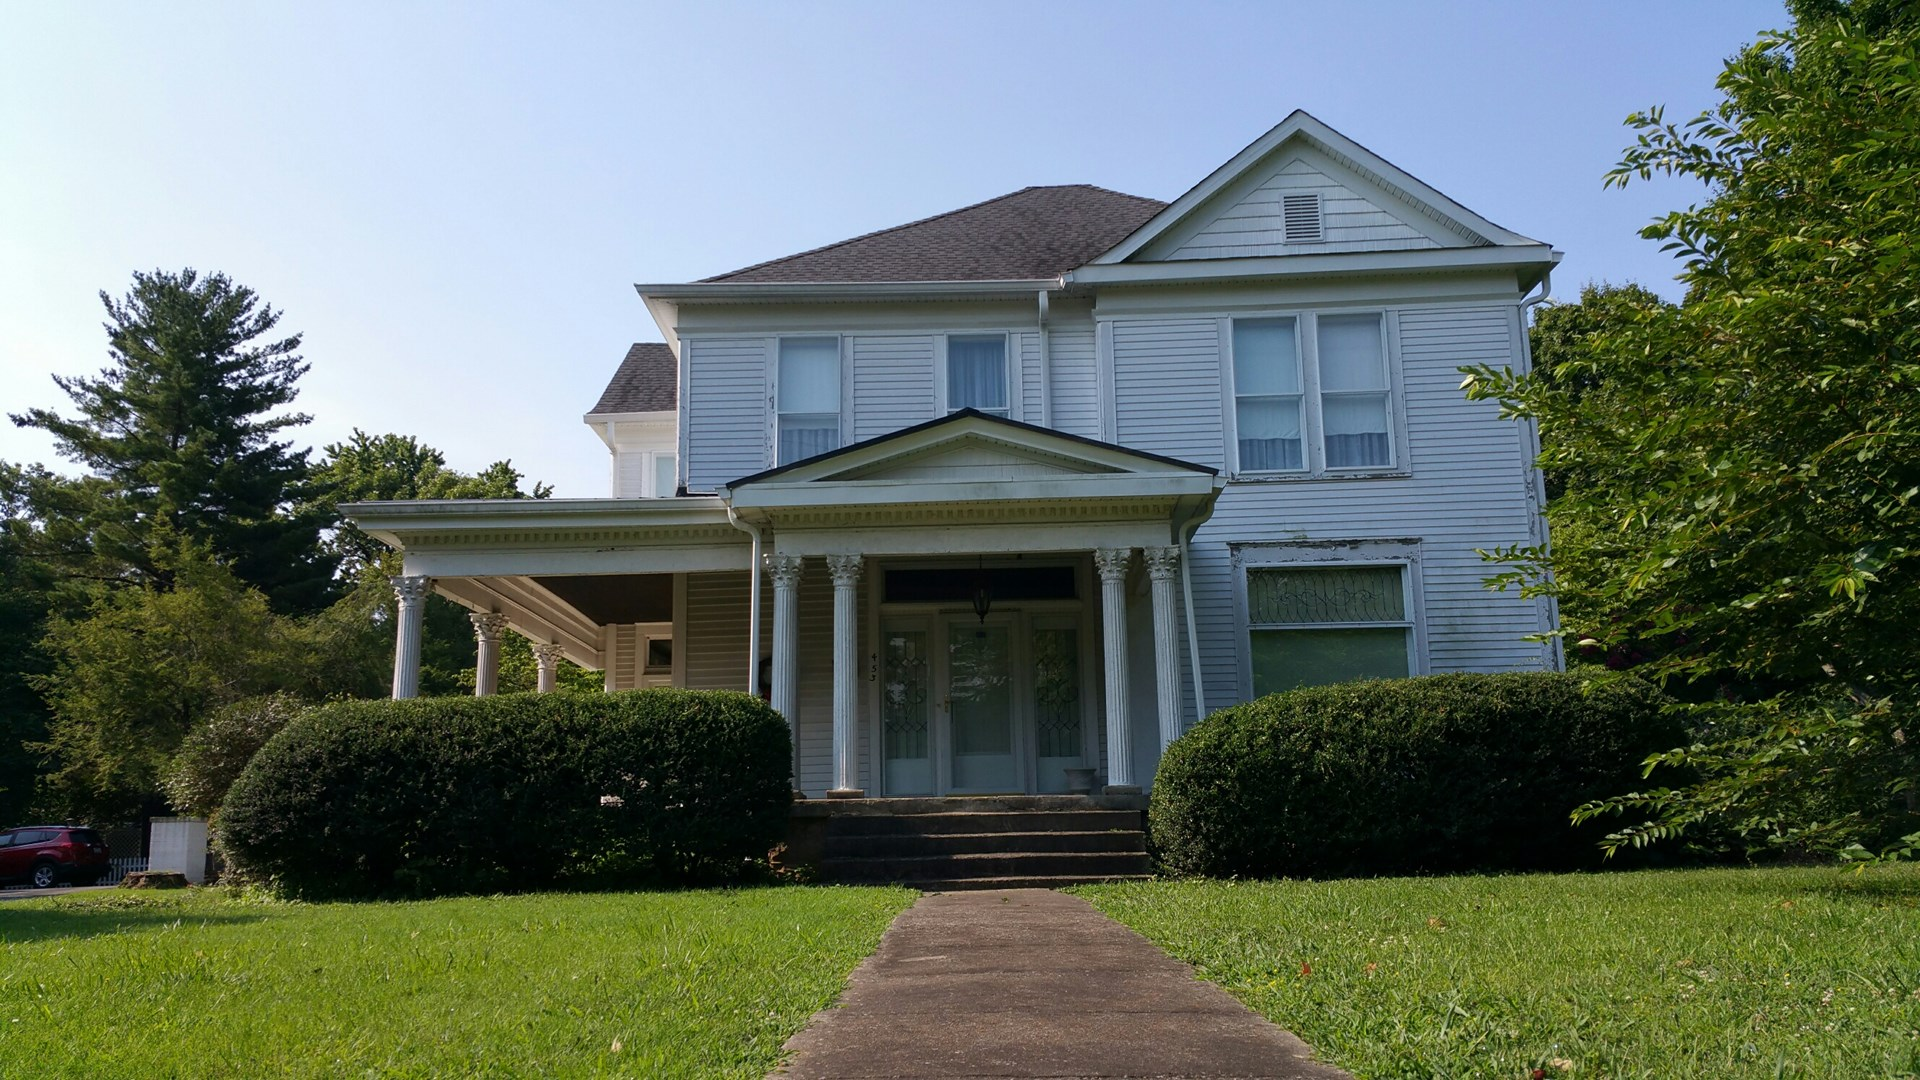 Historic home built in 1910 for sale in Franklin Ky.